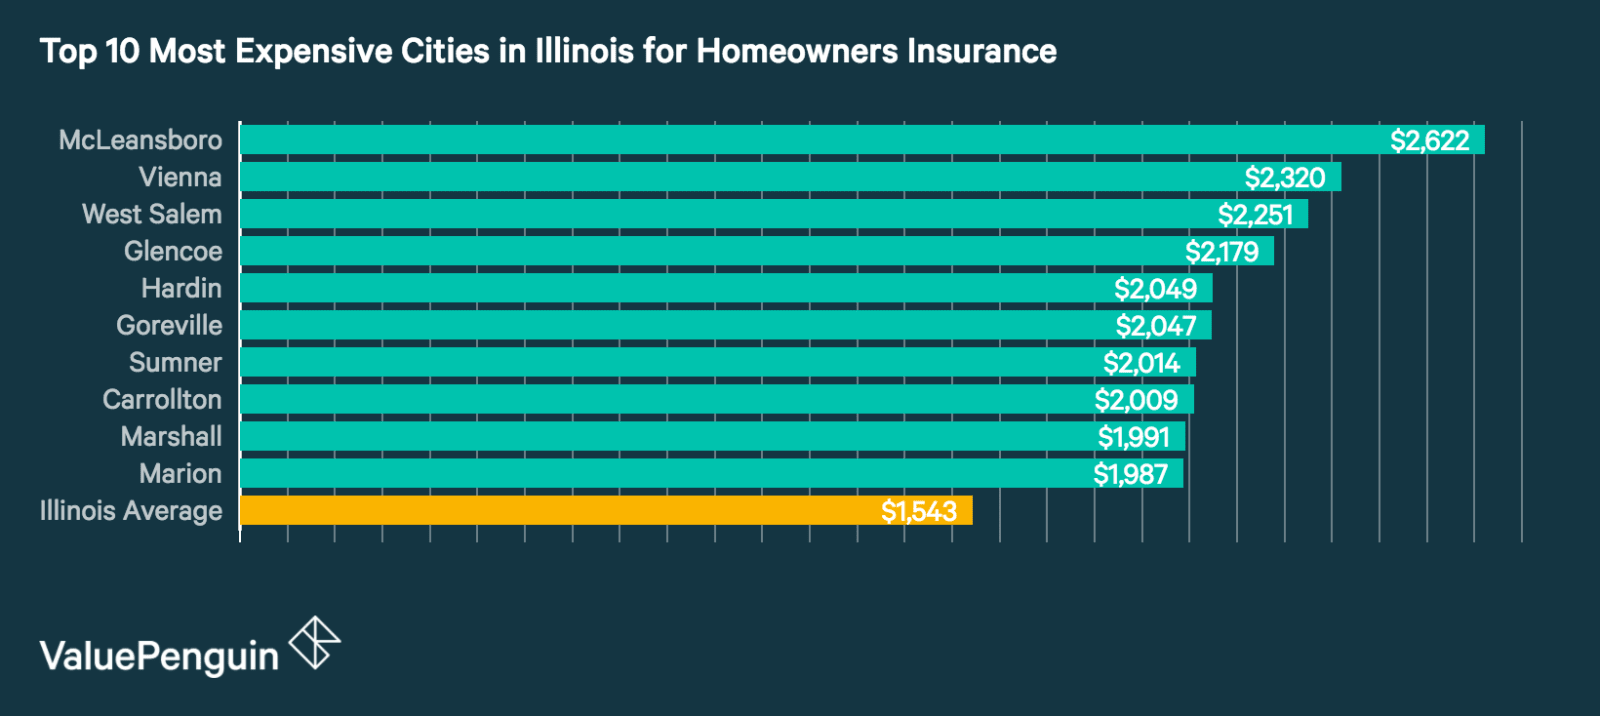 Top 10 Most Expensive Cities in Illinois for Homeowners Insurance